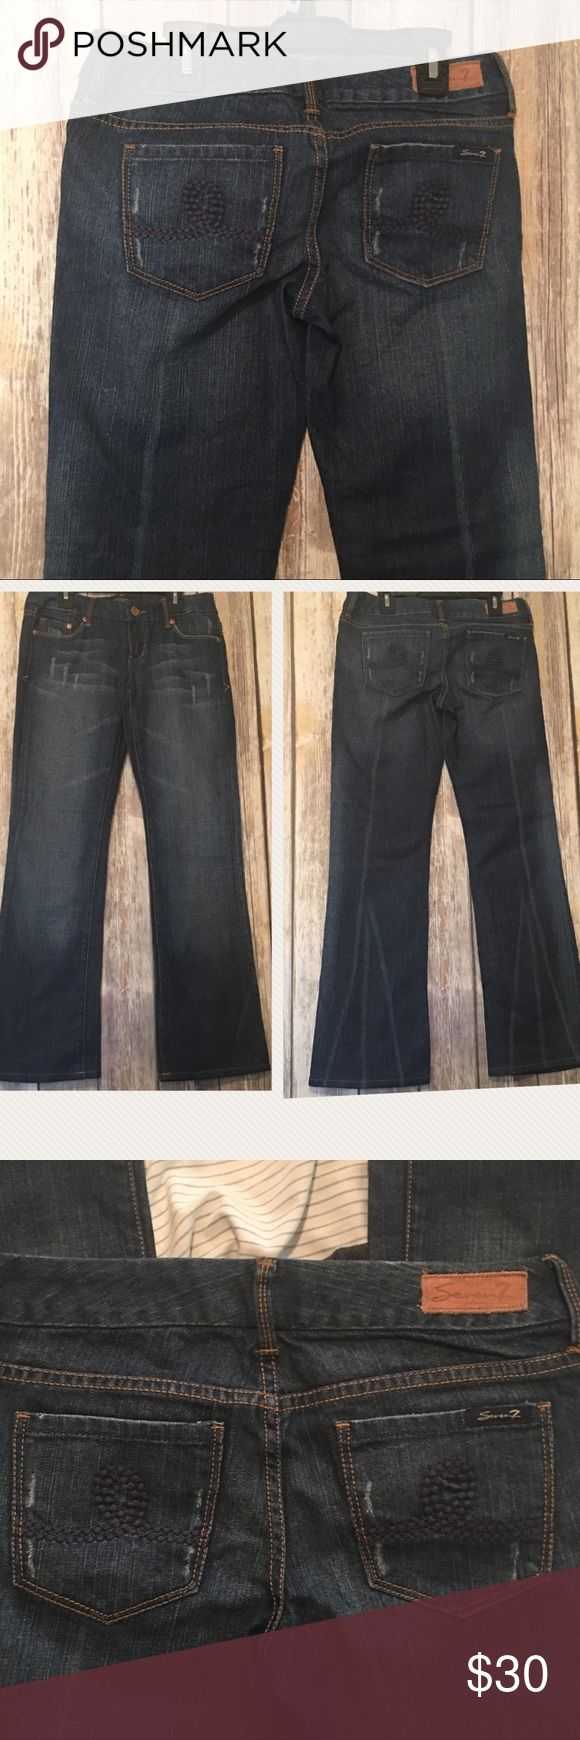 🔴⚪️🔵SALE🔴⚪️🔵Seven 7 Dark Tint Blue Jeans Dark blue tint seven jeans. Boot cut style. In excellent used condition. Size 25. Appealing pocket Design. 28 inch inseam Seven7 Jeans Boot Cut